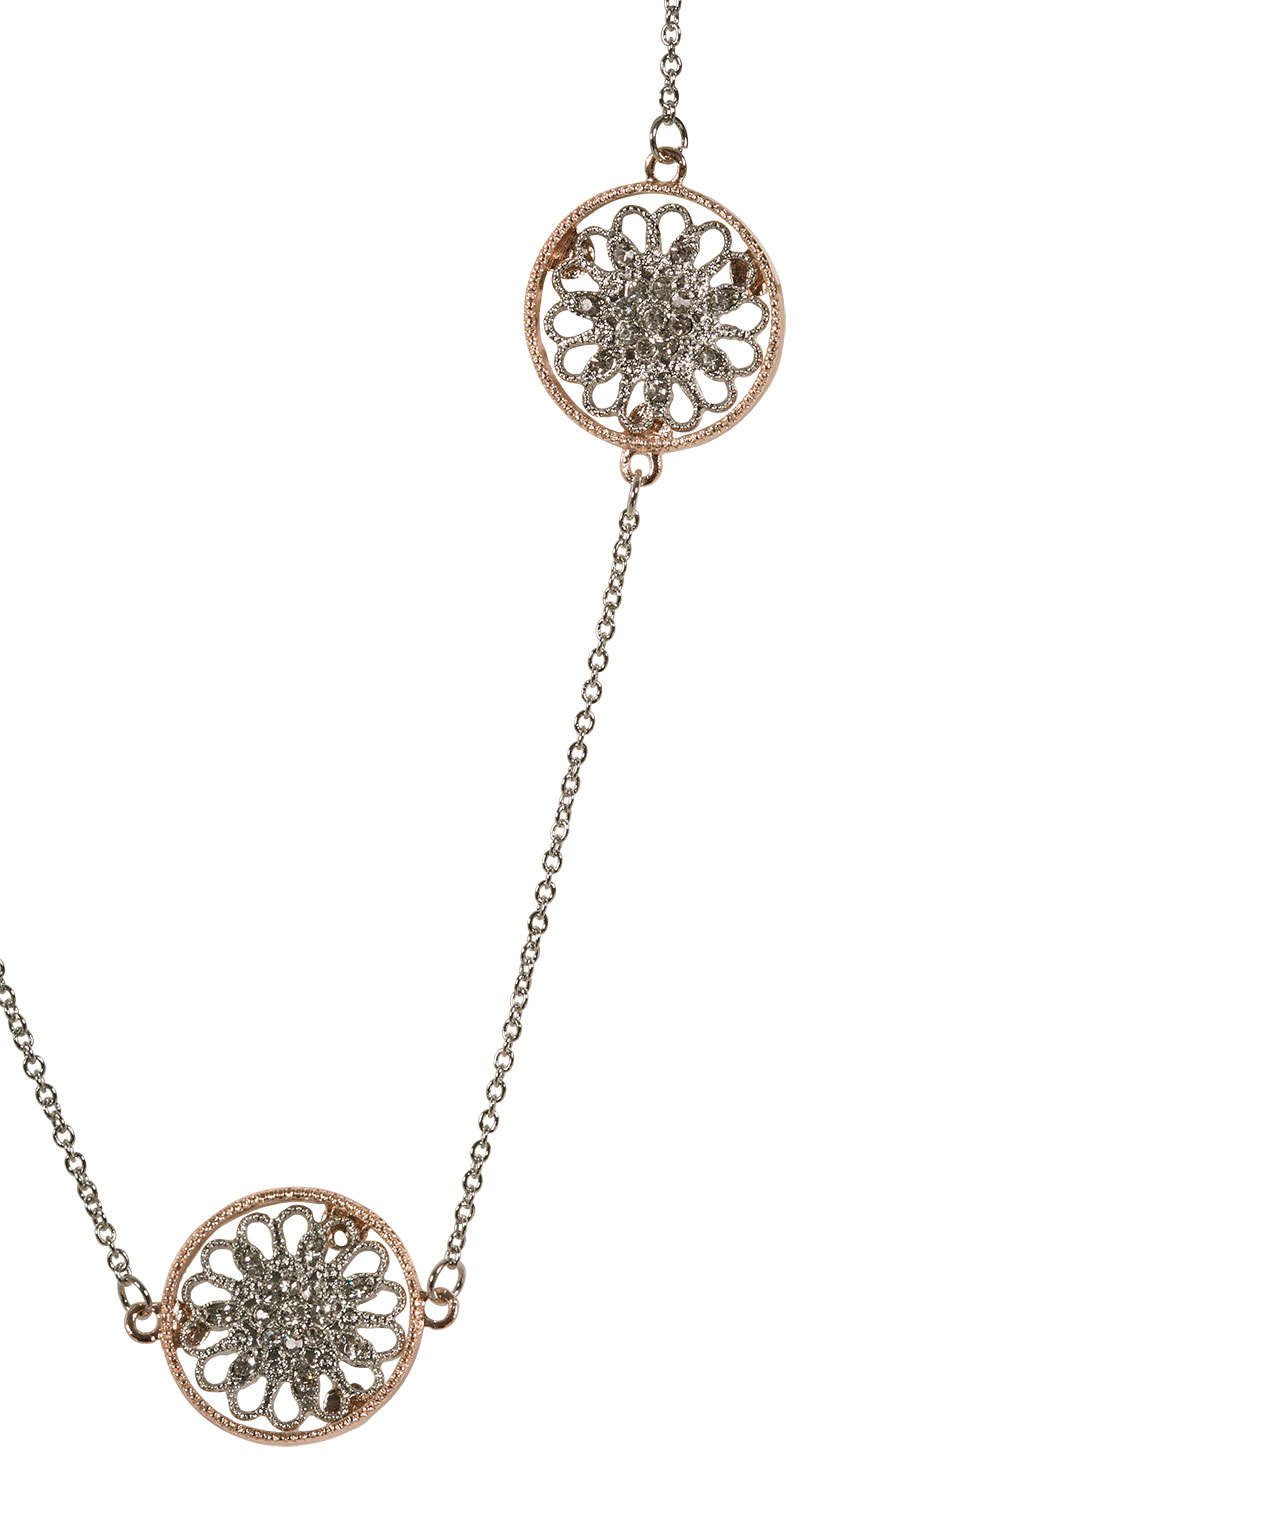 necklace com flower notonthehighstreet metal my product statement myposhshop posh shop original by